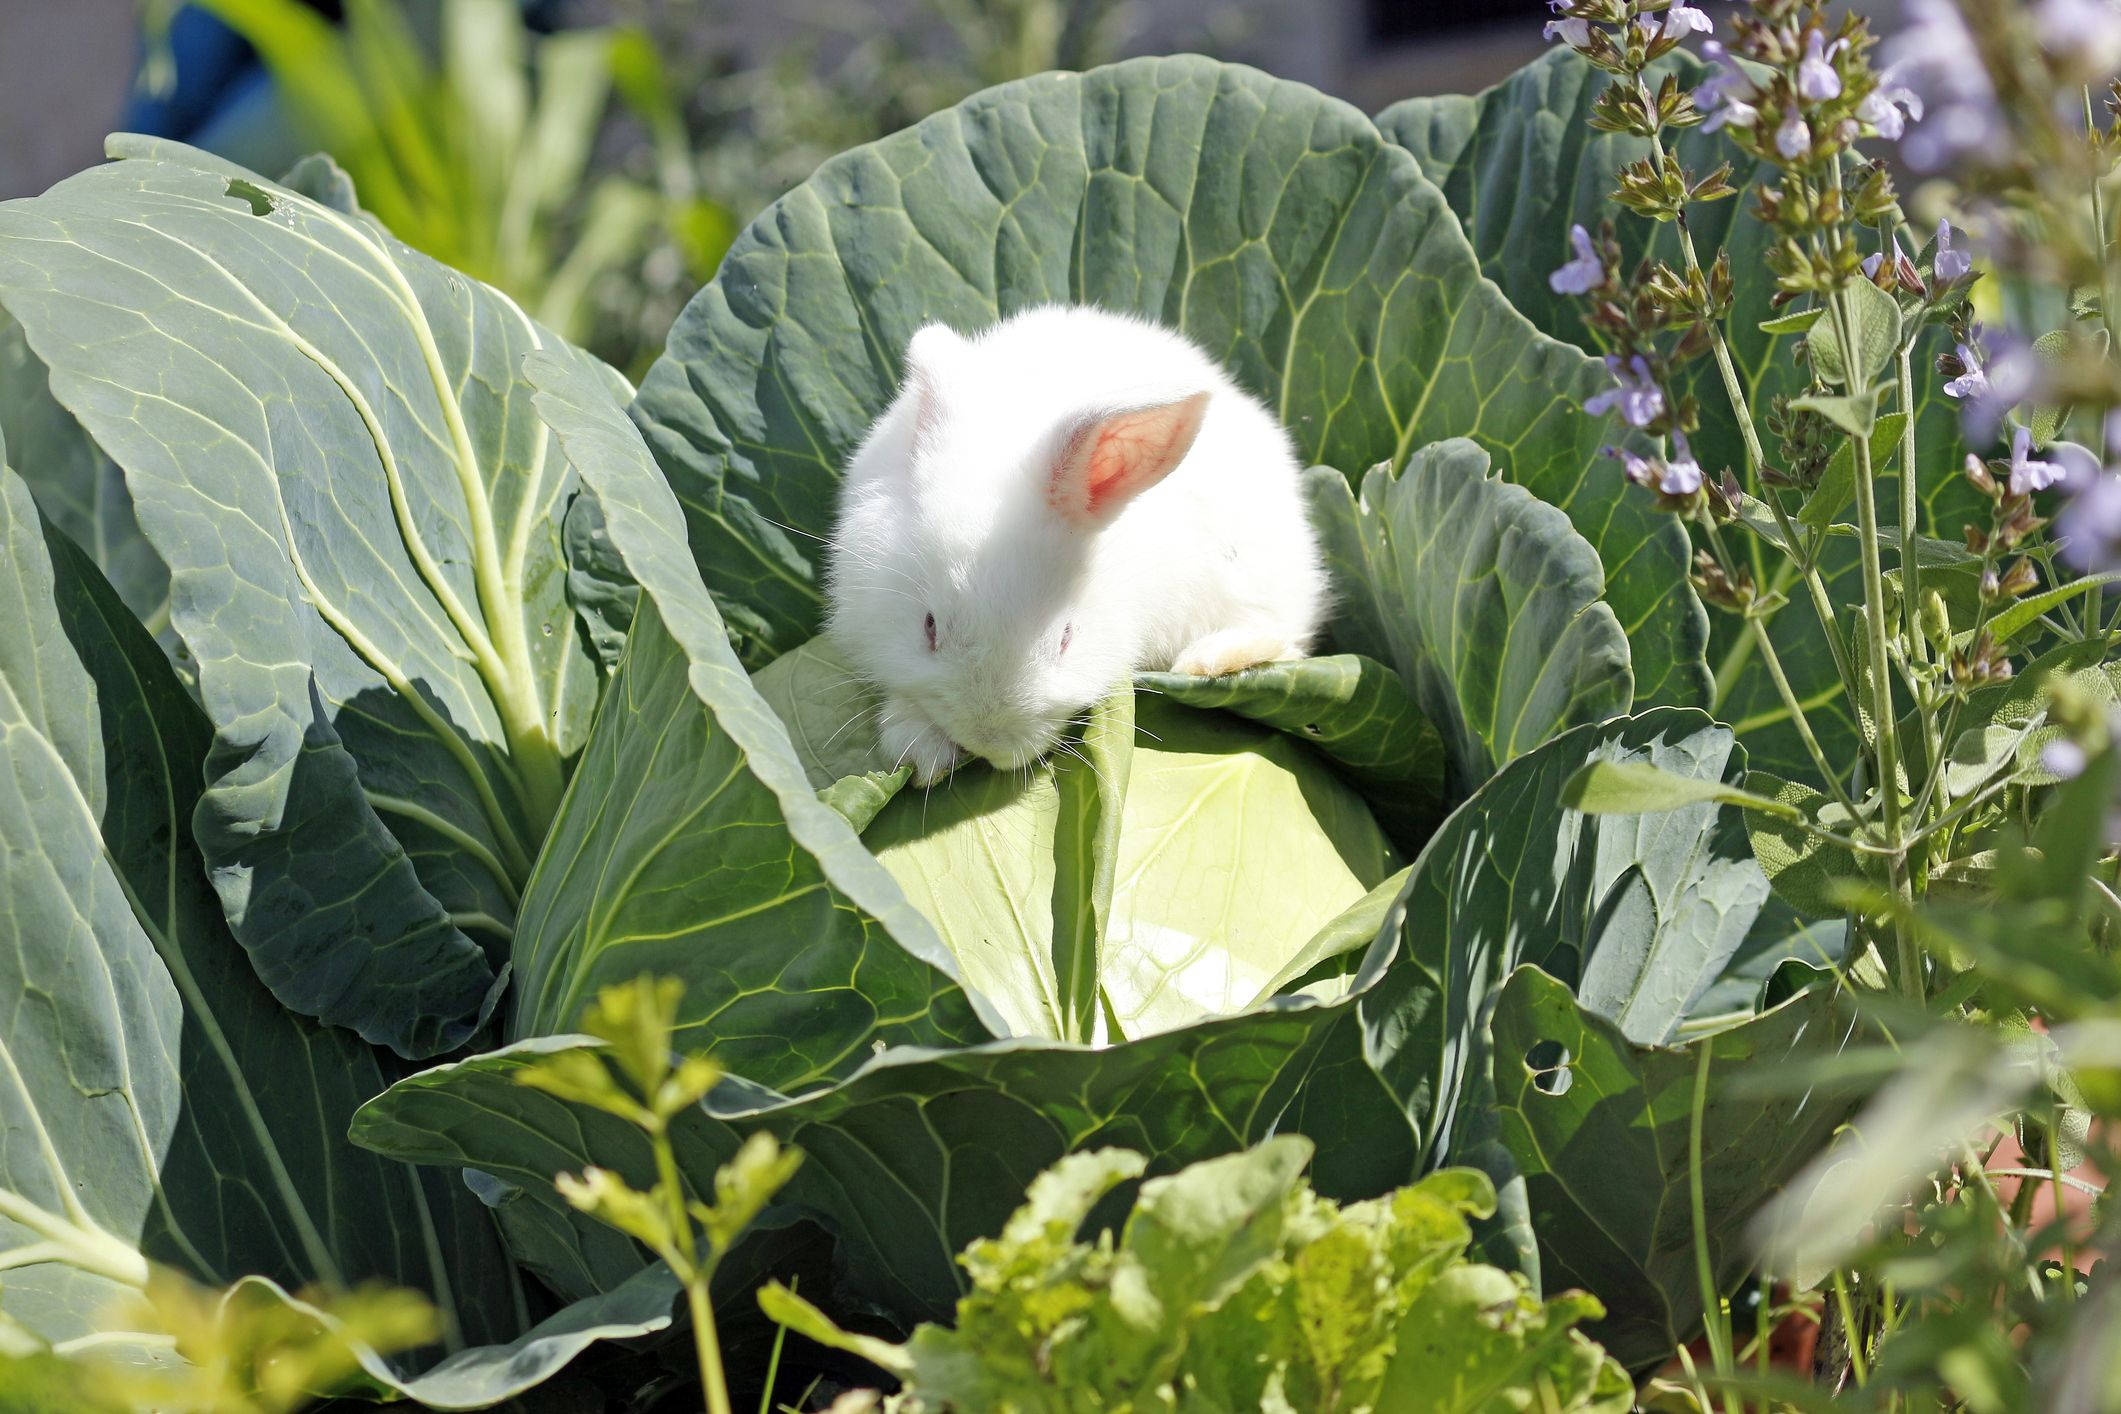 clean bc garden for and gardening img seed keep out birds of volcanoes guerilla canada surrey